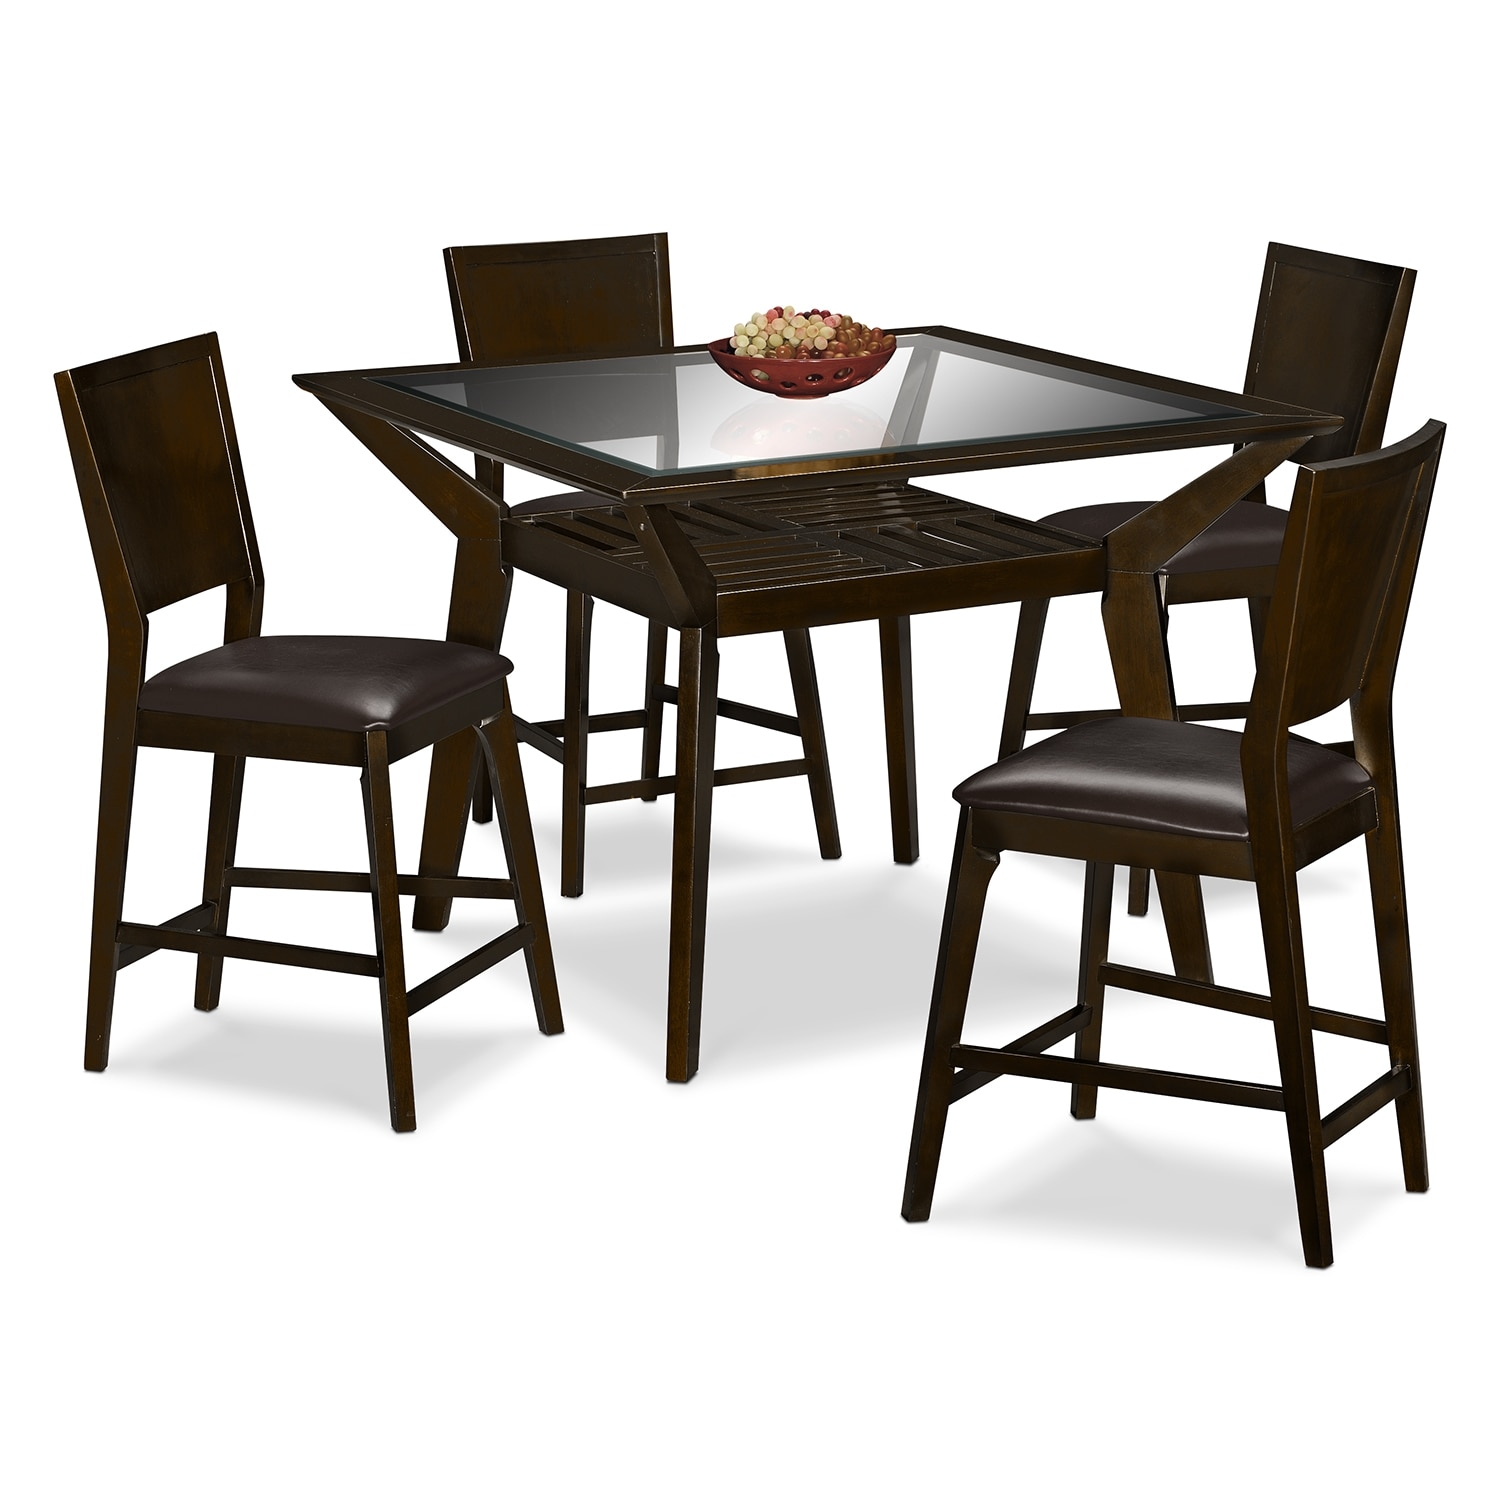 Dining Room Furniture Sale: Mystic Counter-Height Table And 4 Chairs